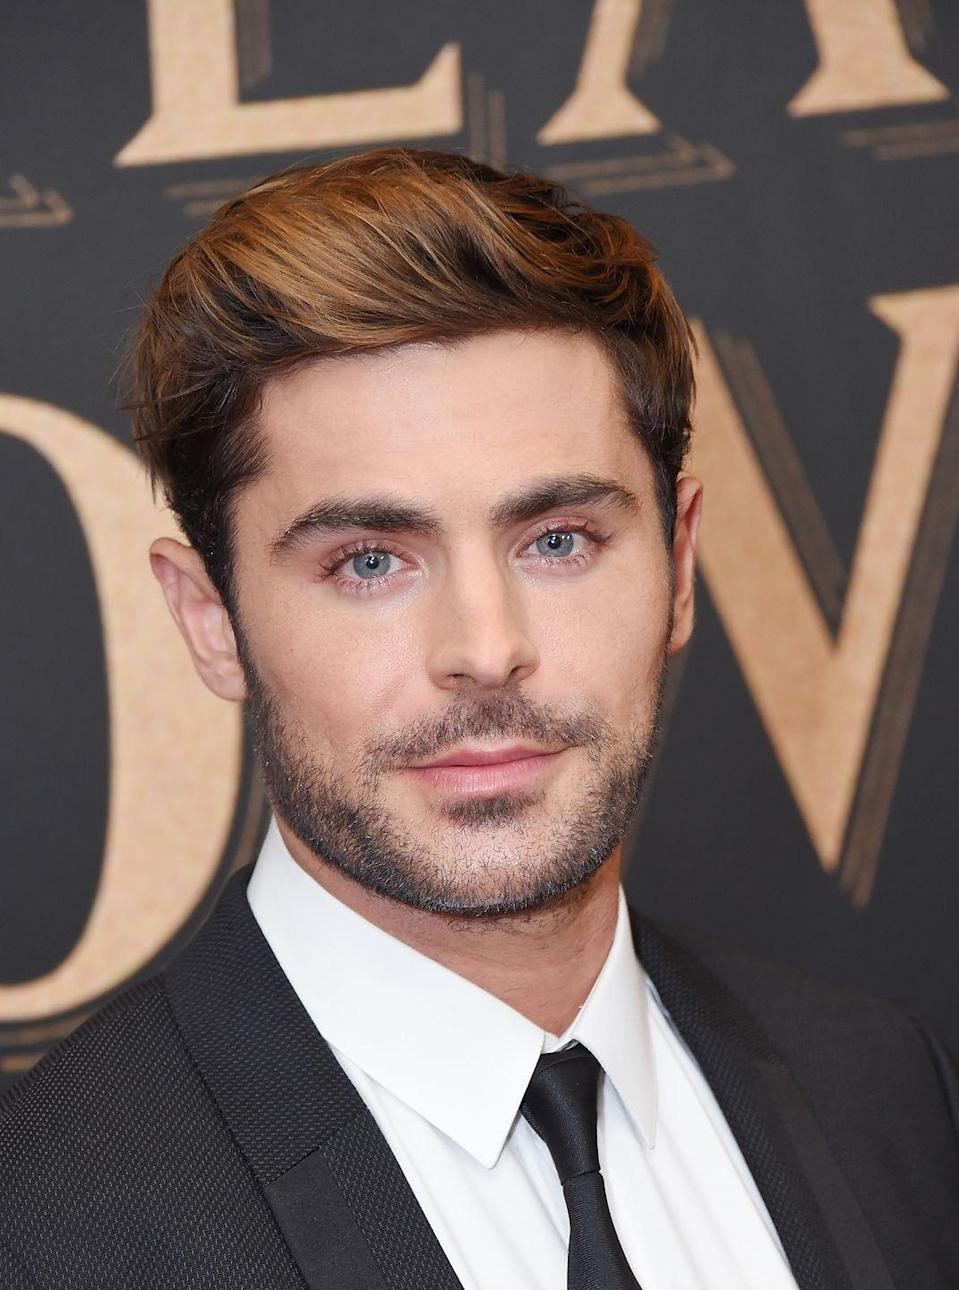 <p>While Zac Efron is known to change up his hair often (remember the Troy Bolton cut?), these days we're used to seeing a short dirty blonde style. </p>